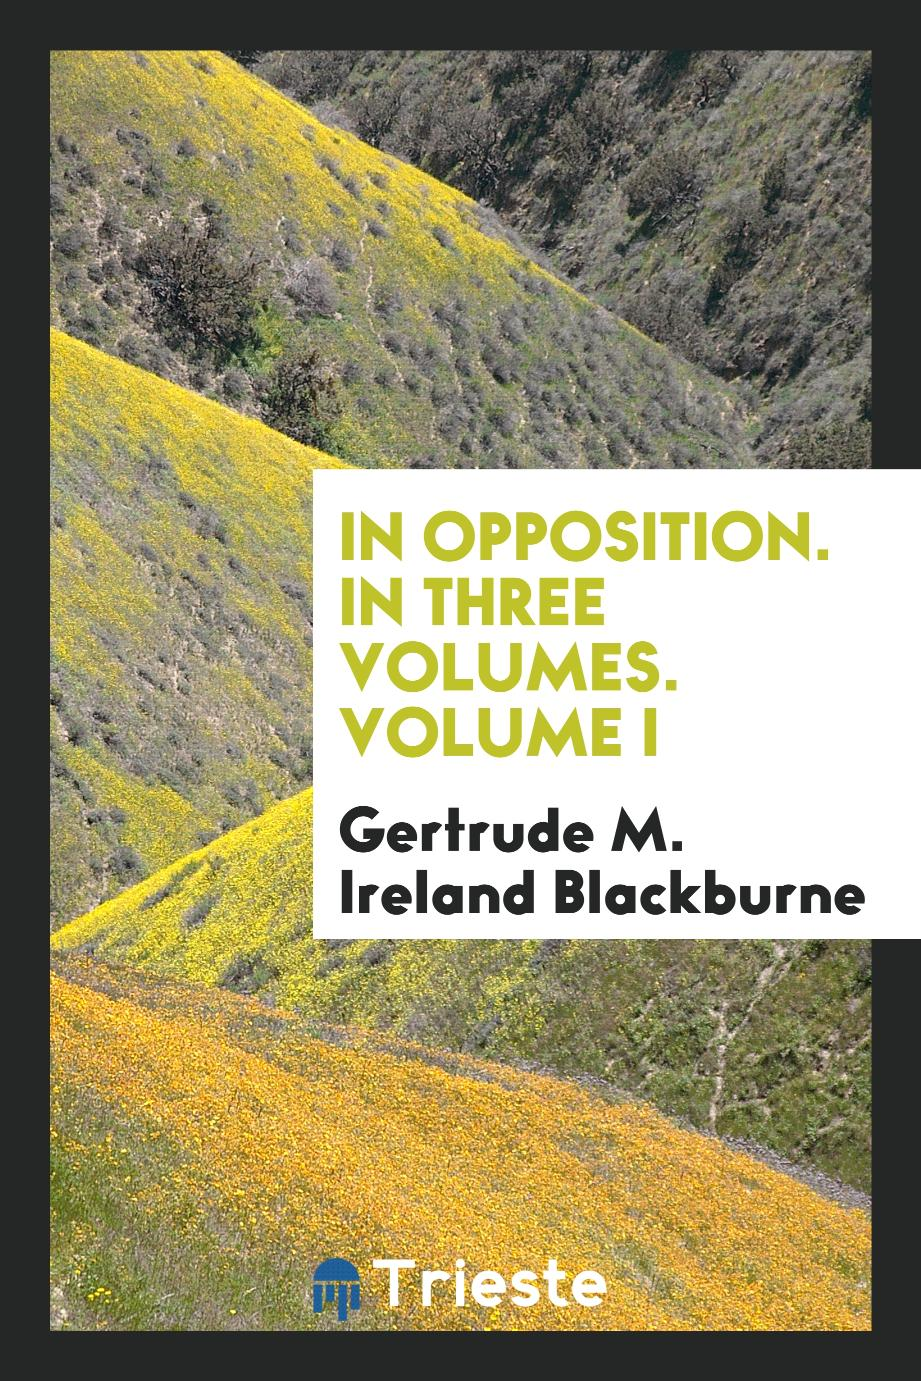 In opposition. In three volumes. Volume I